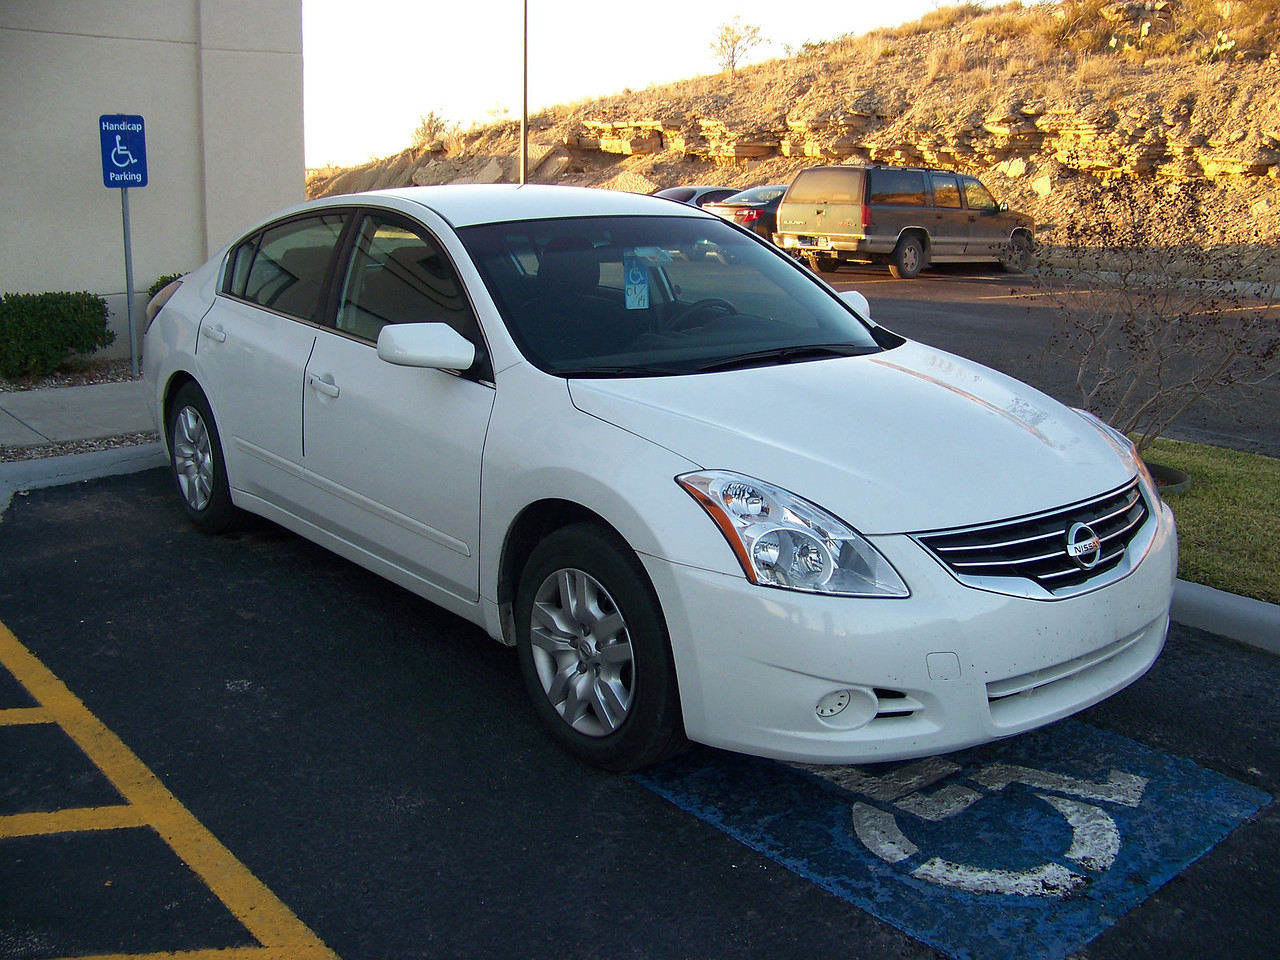 This is the Nissan I rented while I was in Texas.  It was a nice ride!